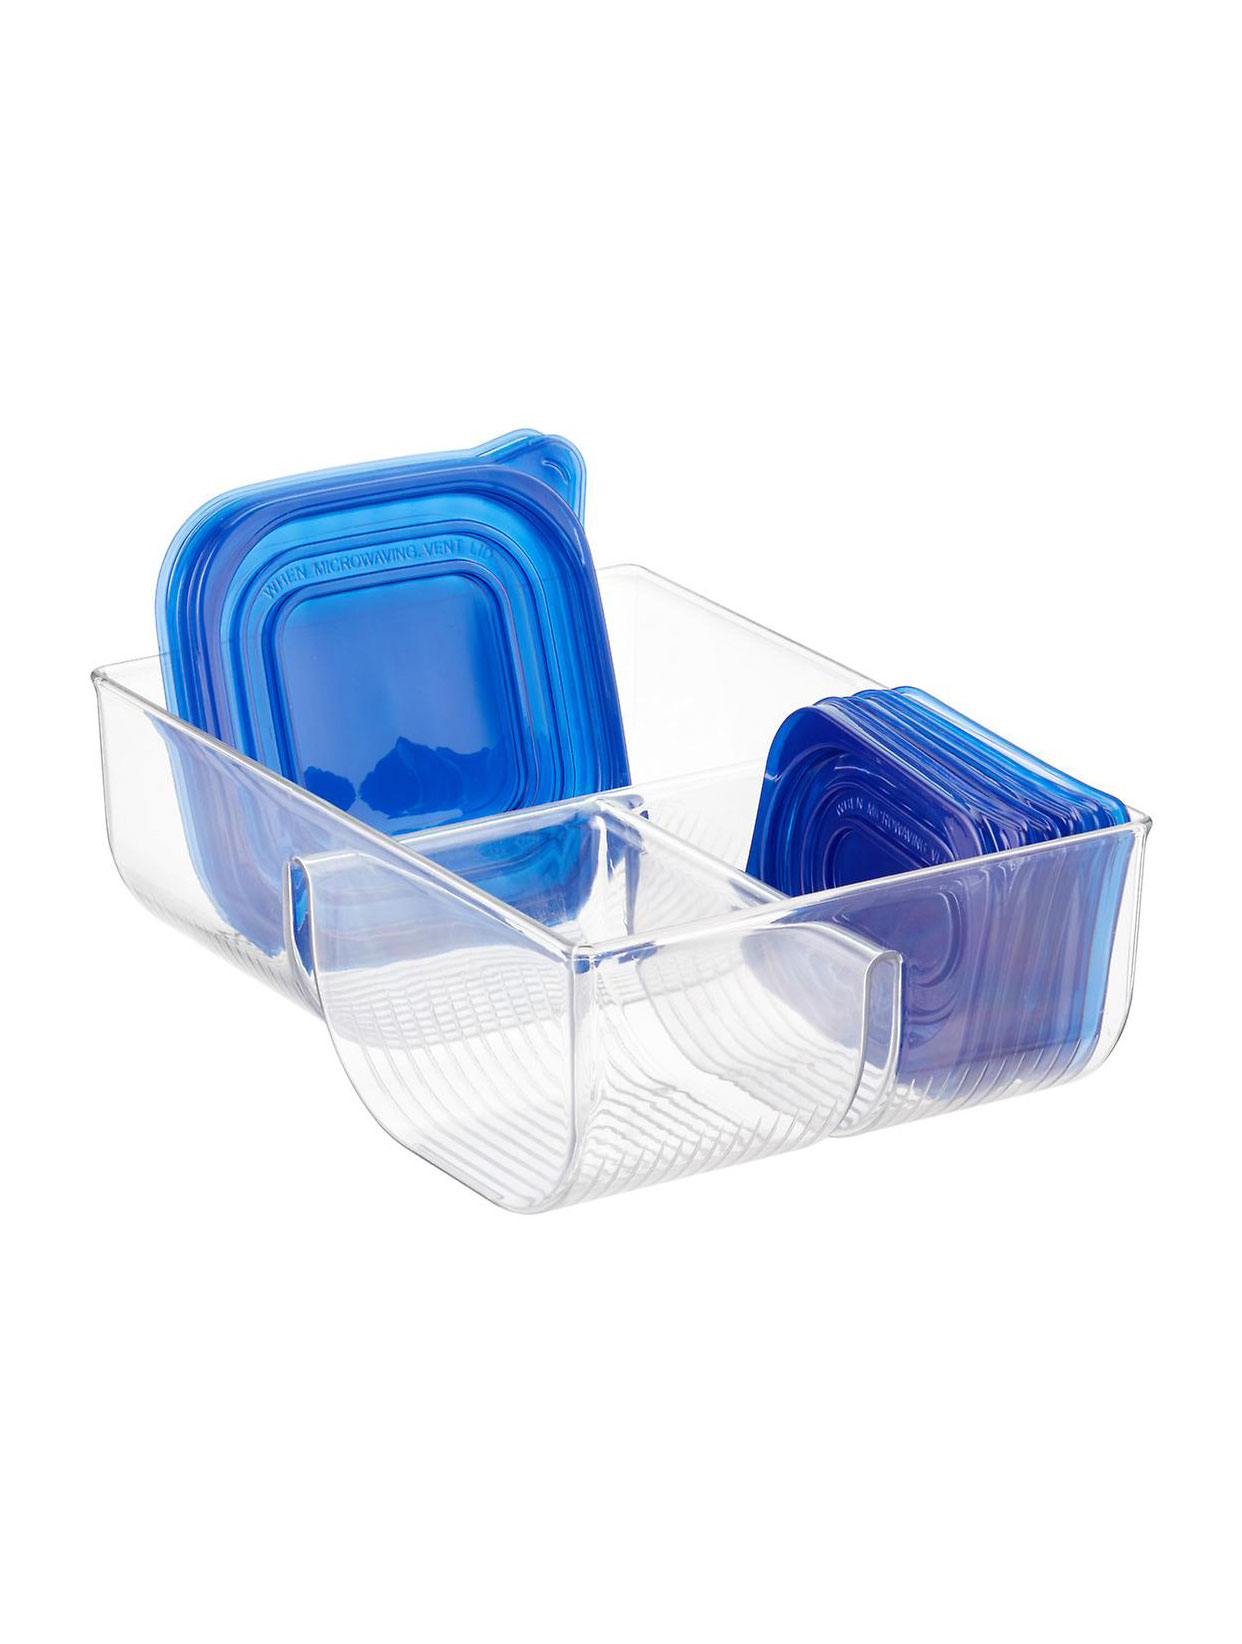 Food Container Lid Organizer